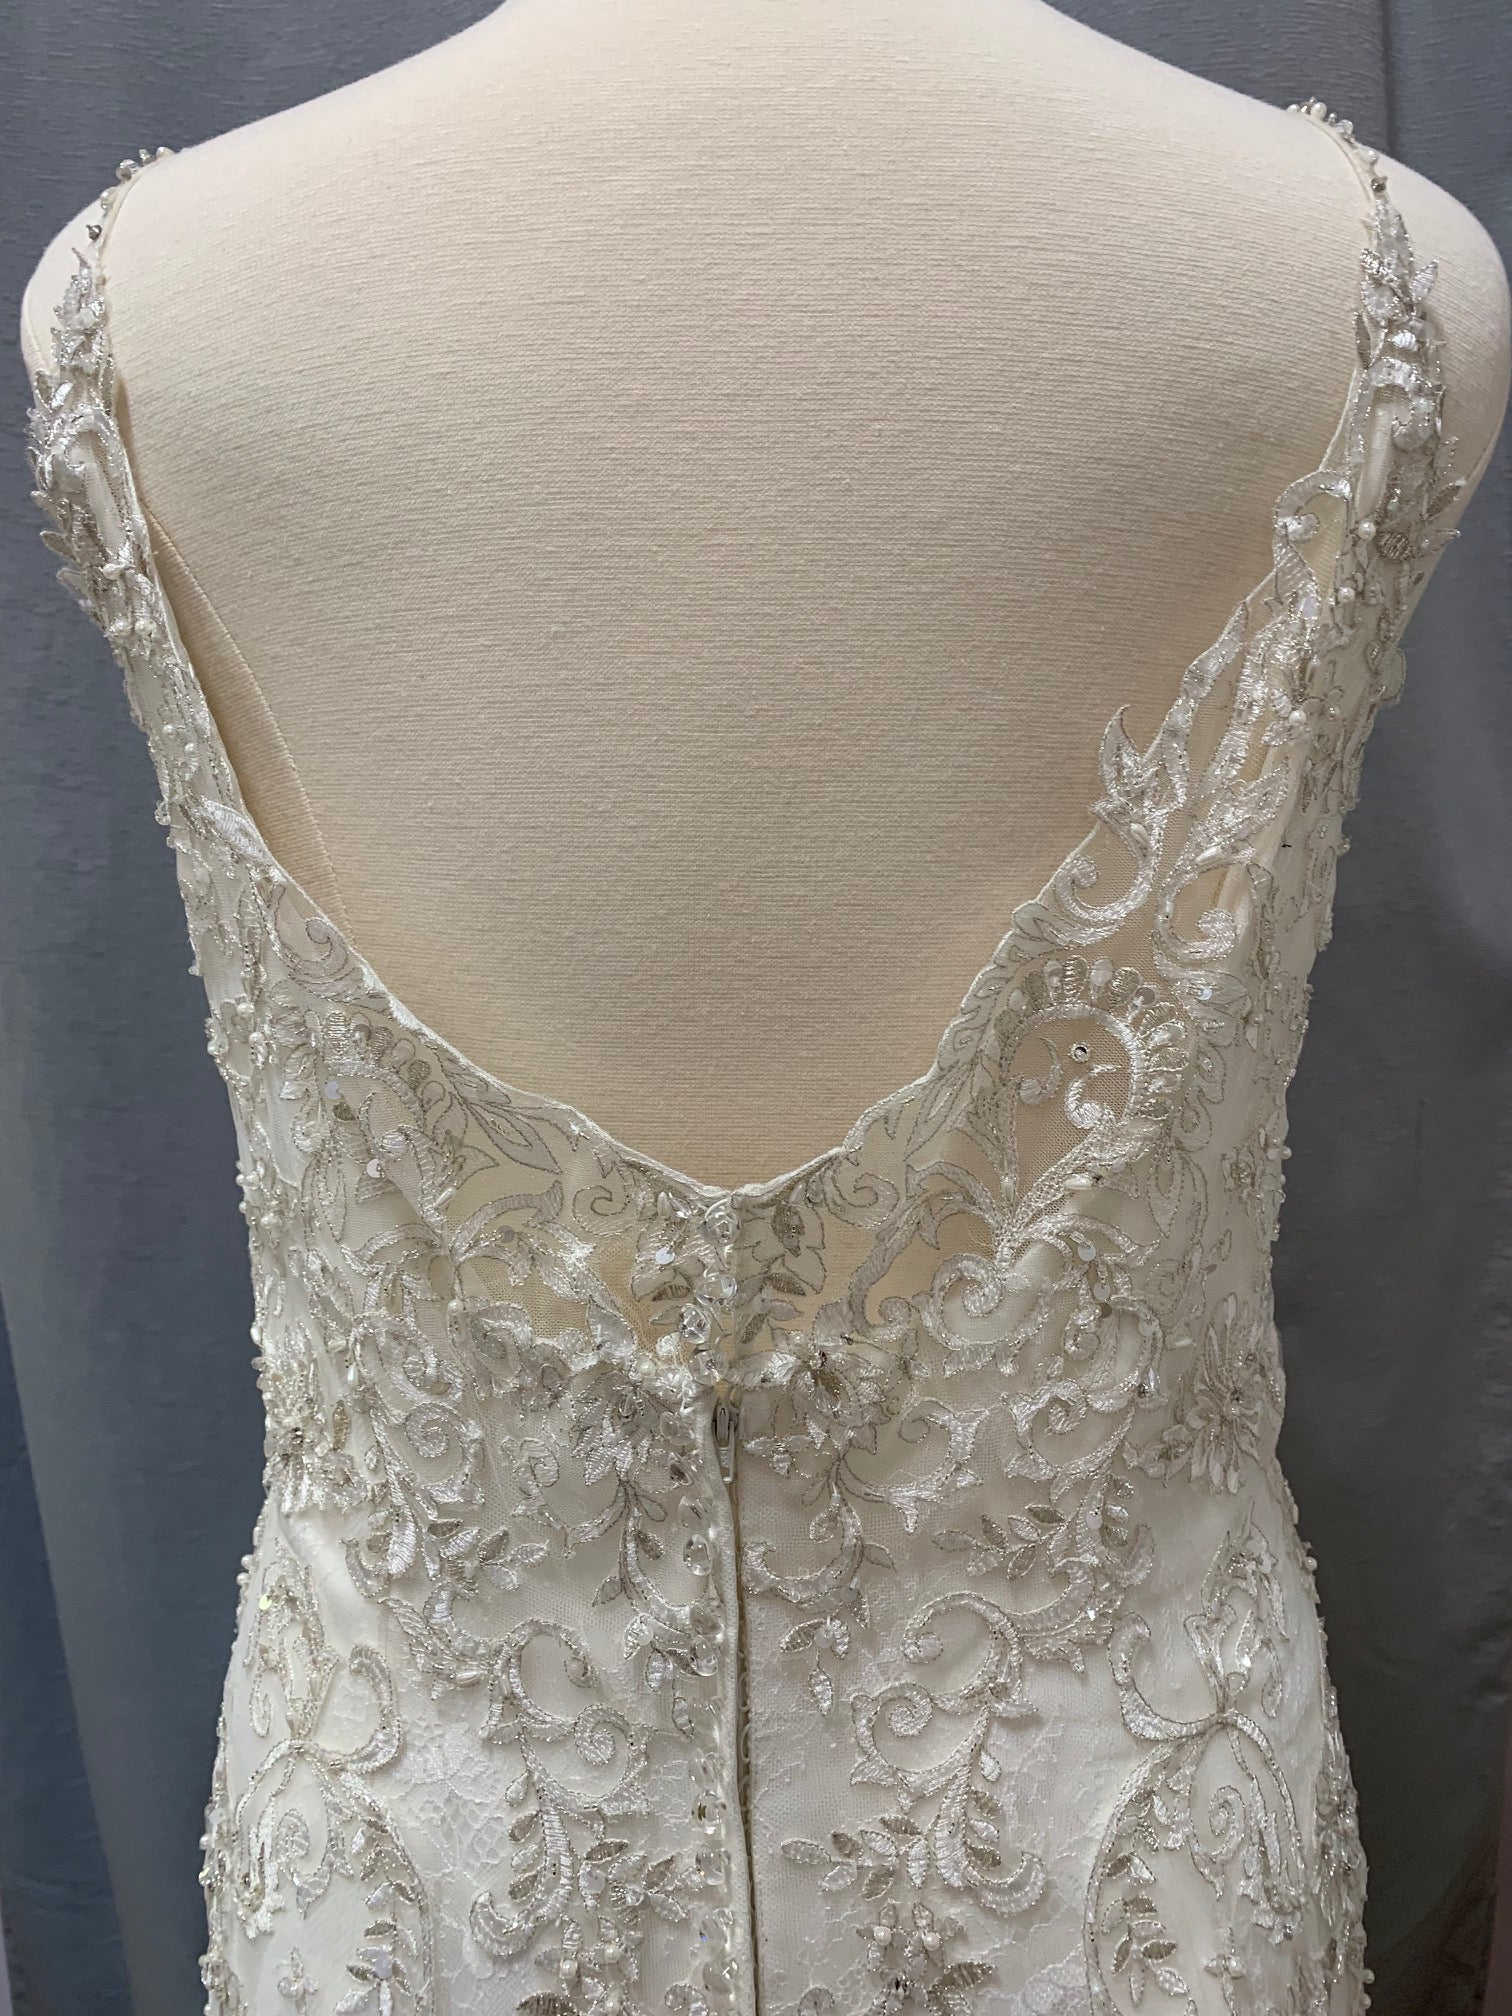 Rebecca Ingram - Claire Anne - Size 24 - Ivory/Pewter Accent